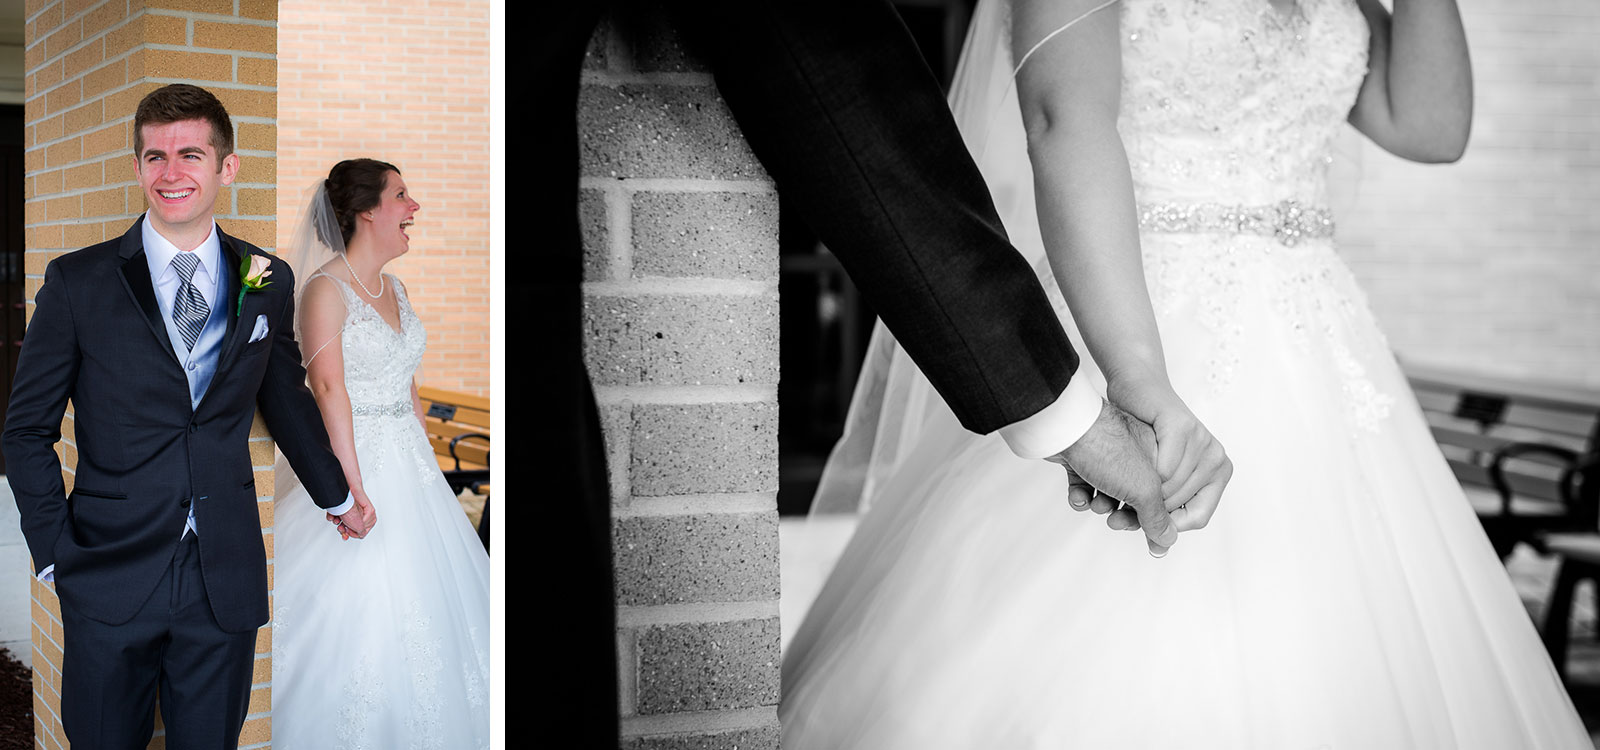 Eric_and_Christy_Photography_Blog_Wedding_Kelly_Michael-4-5